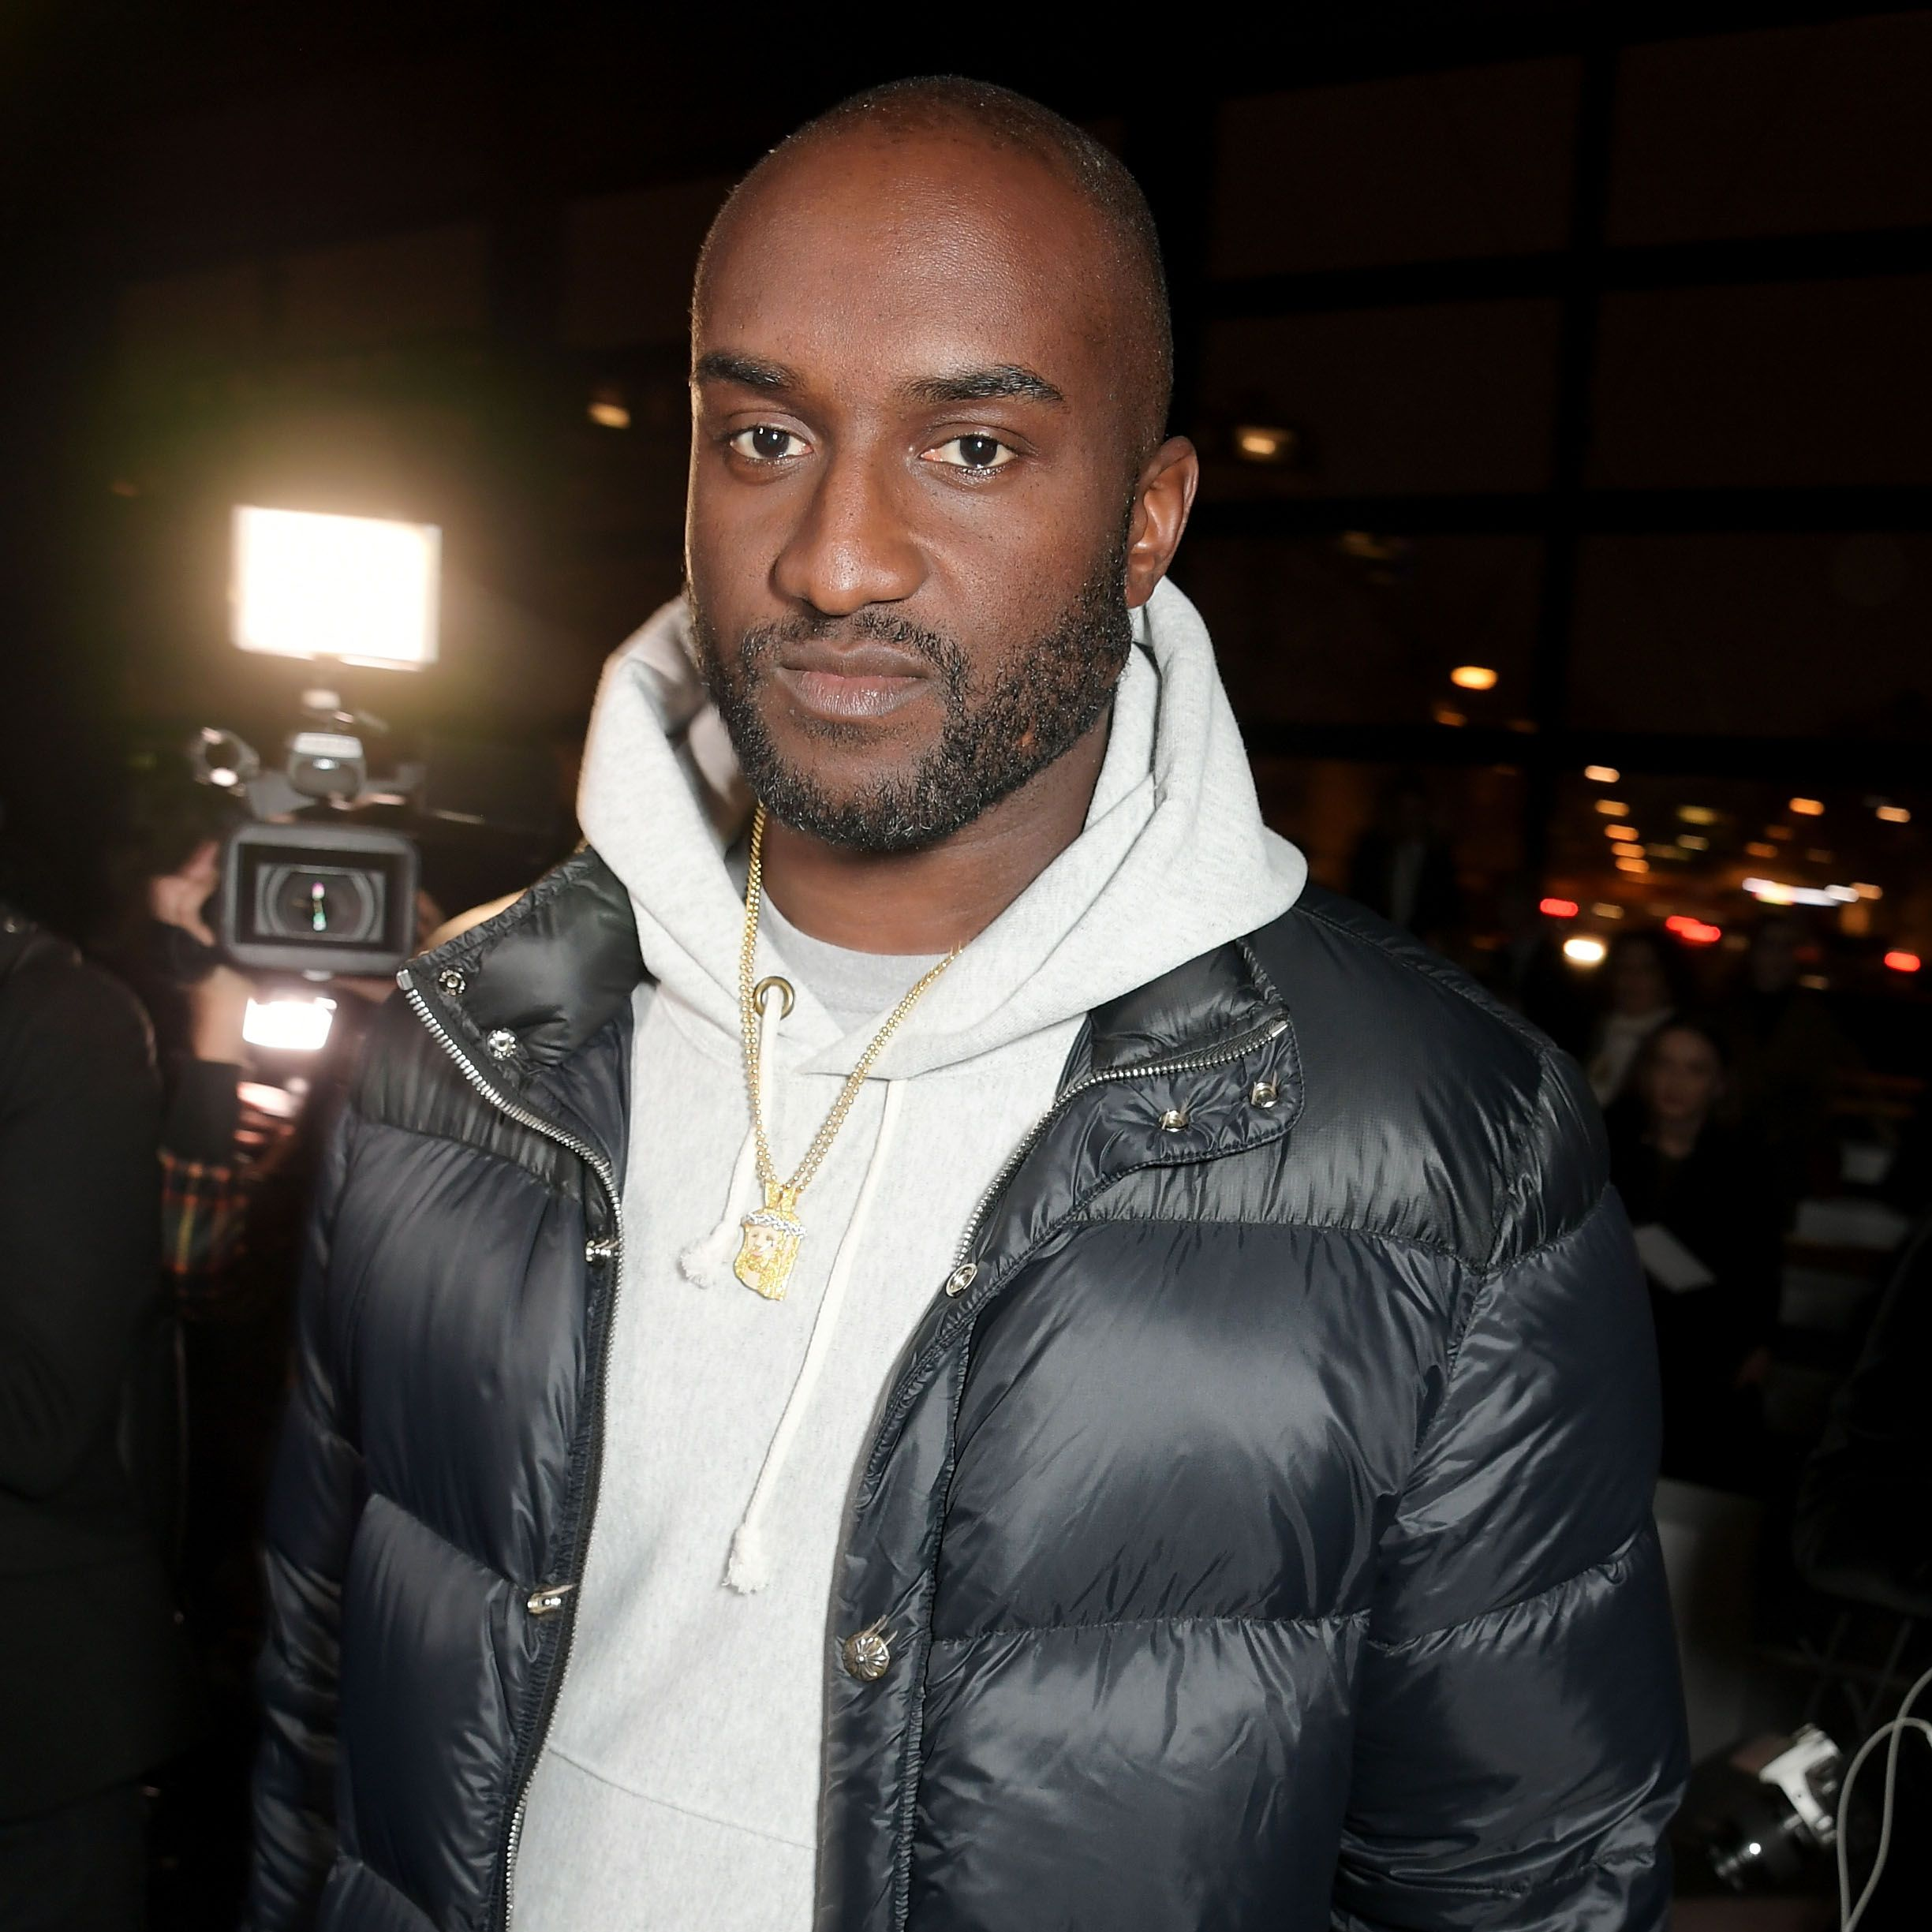 No One Makes A Better Case For Wearing Streetwear Than Virgil Abloh Himself